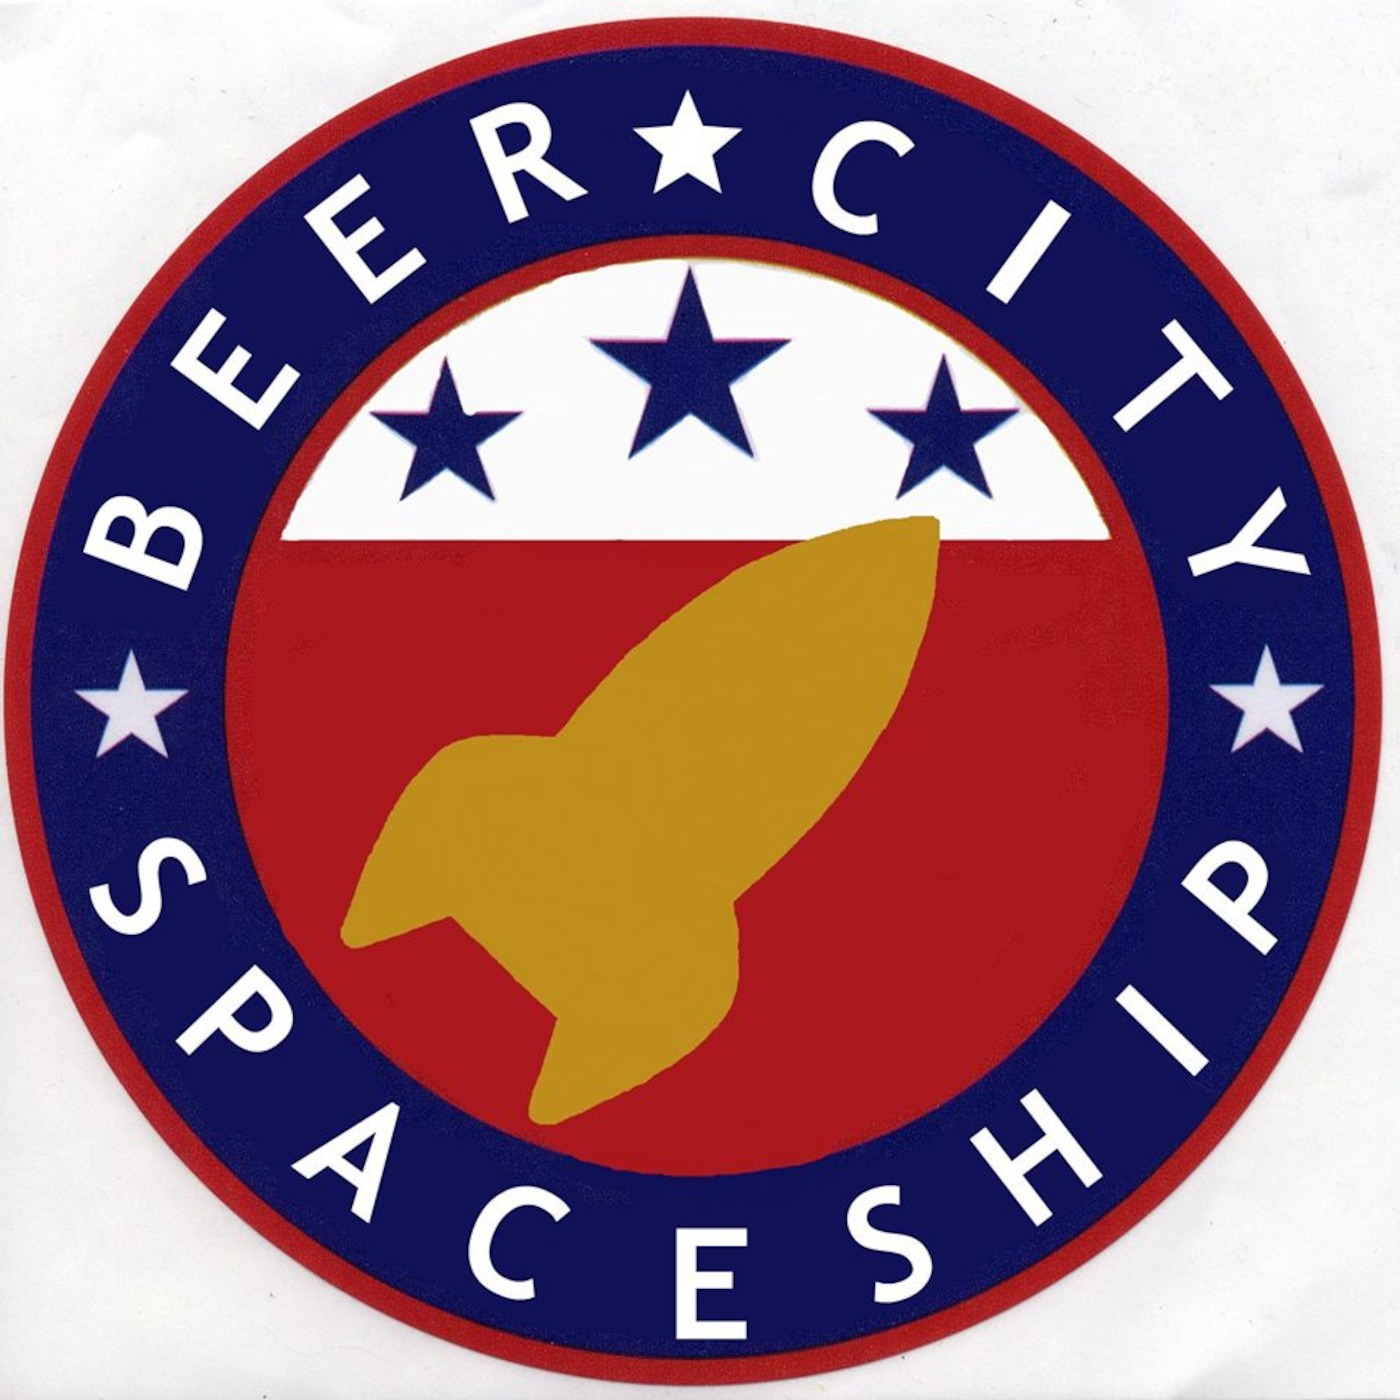 Beer City Spaceship